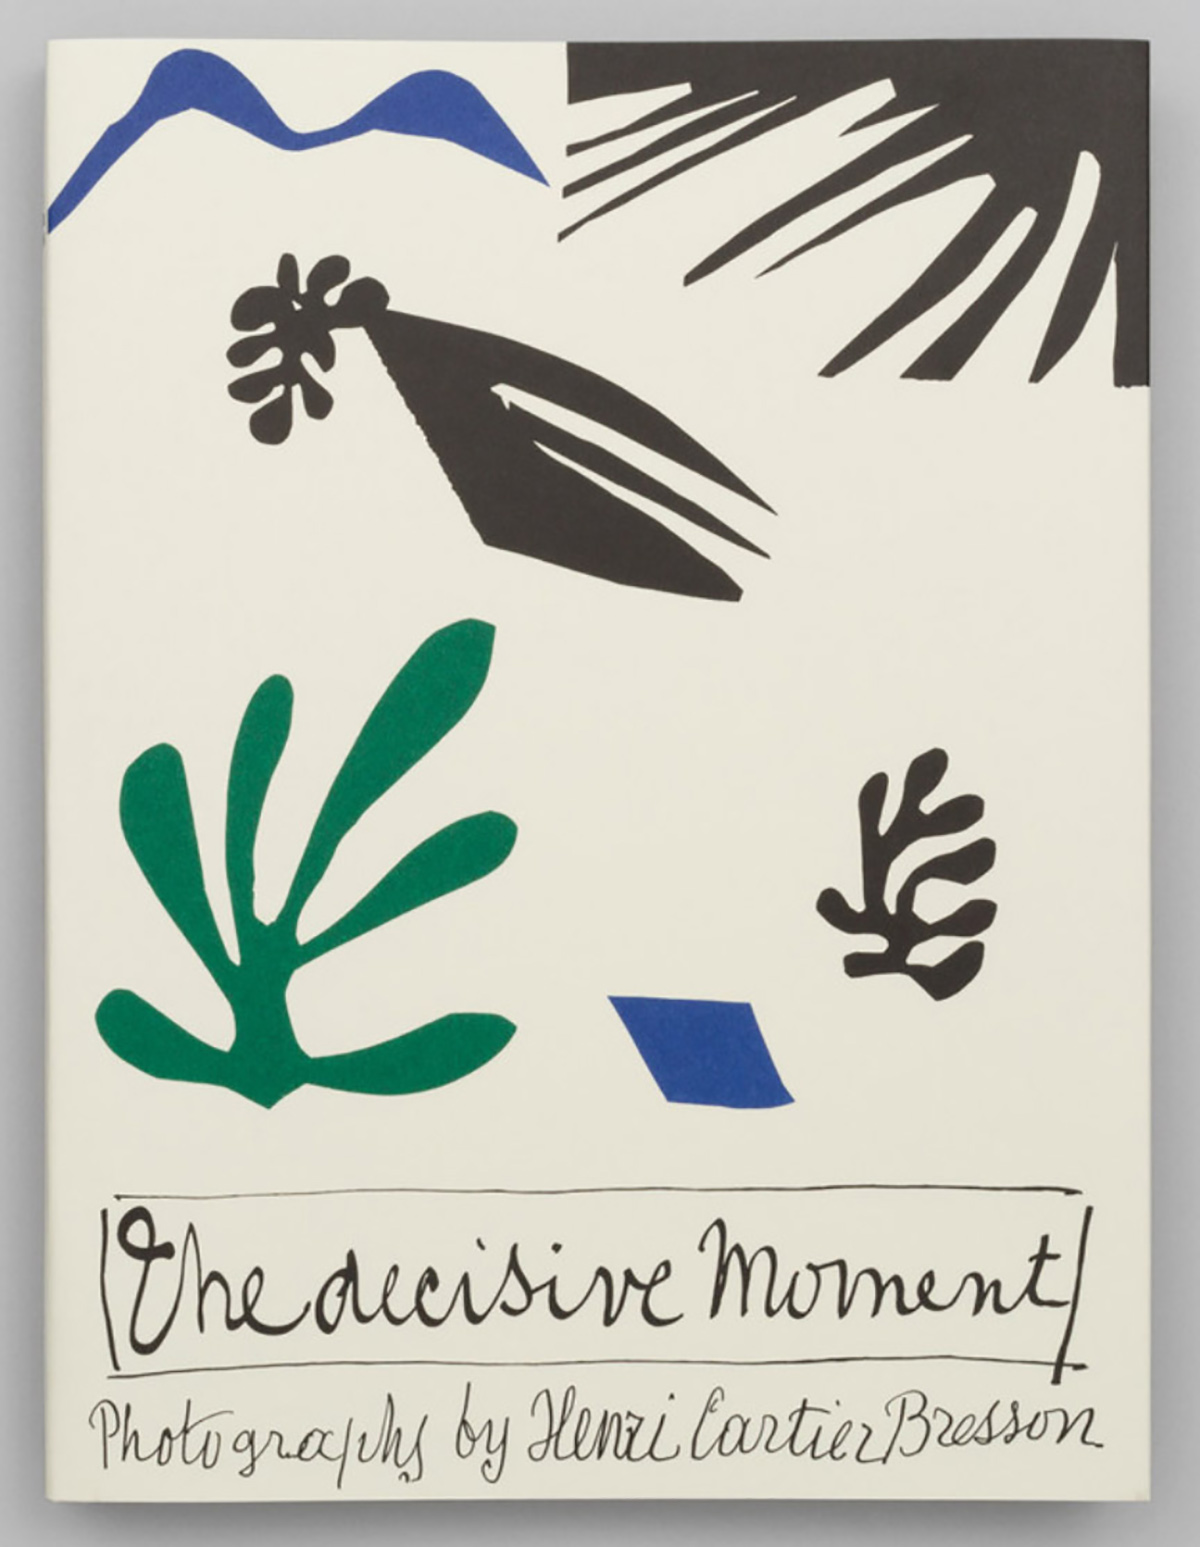 2photoq-bookshop-cartier-bresson-decisive-moment-cover-front.jpg